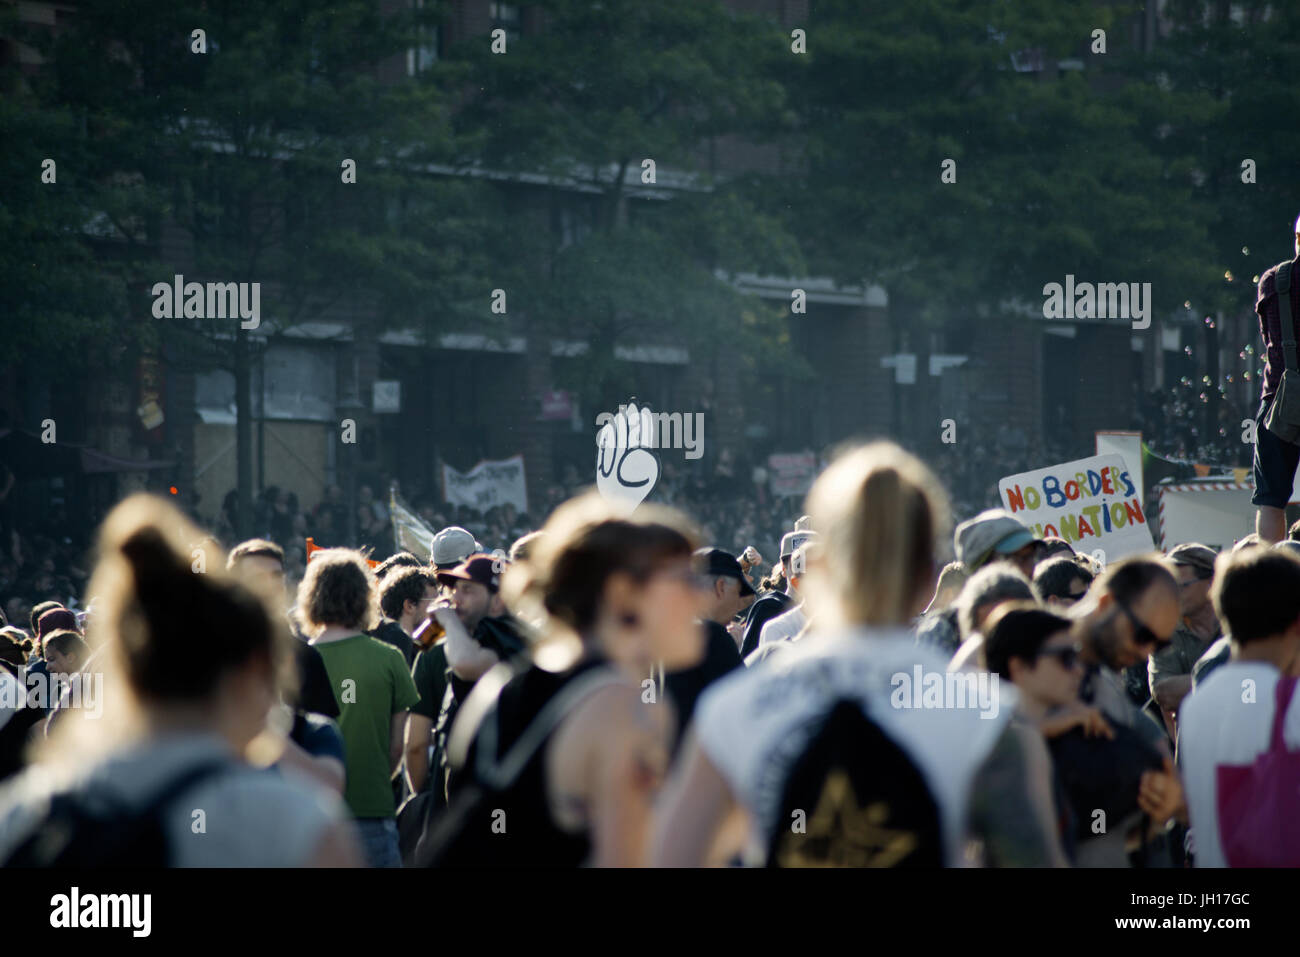 G20, Welcome to hell - Stock Image